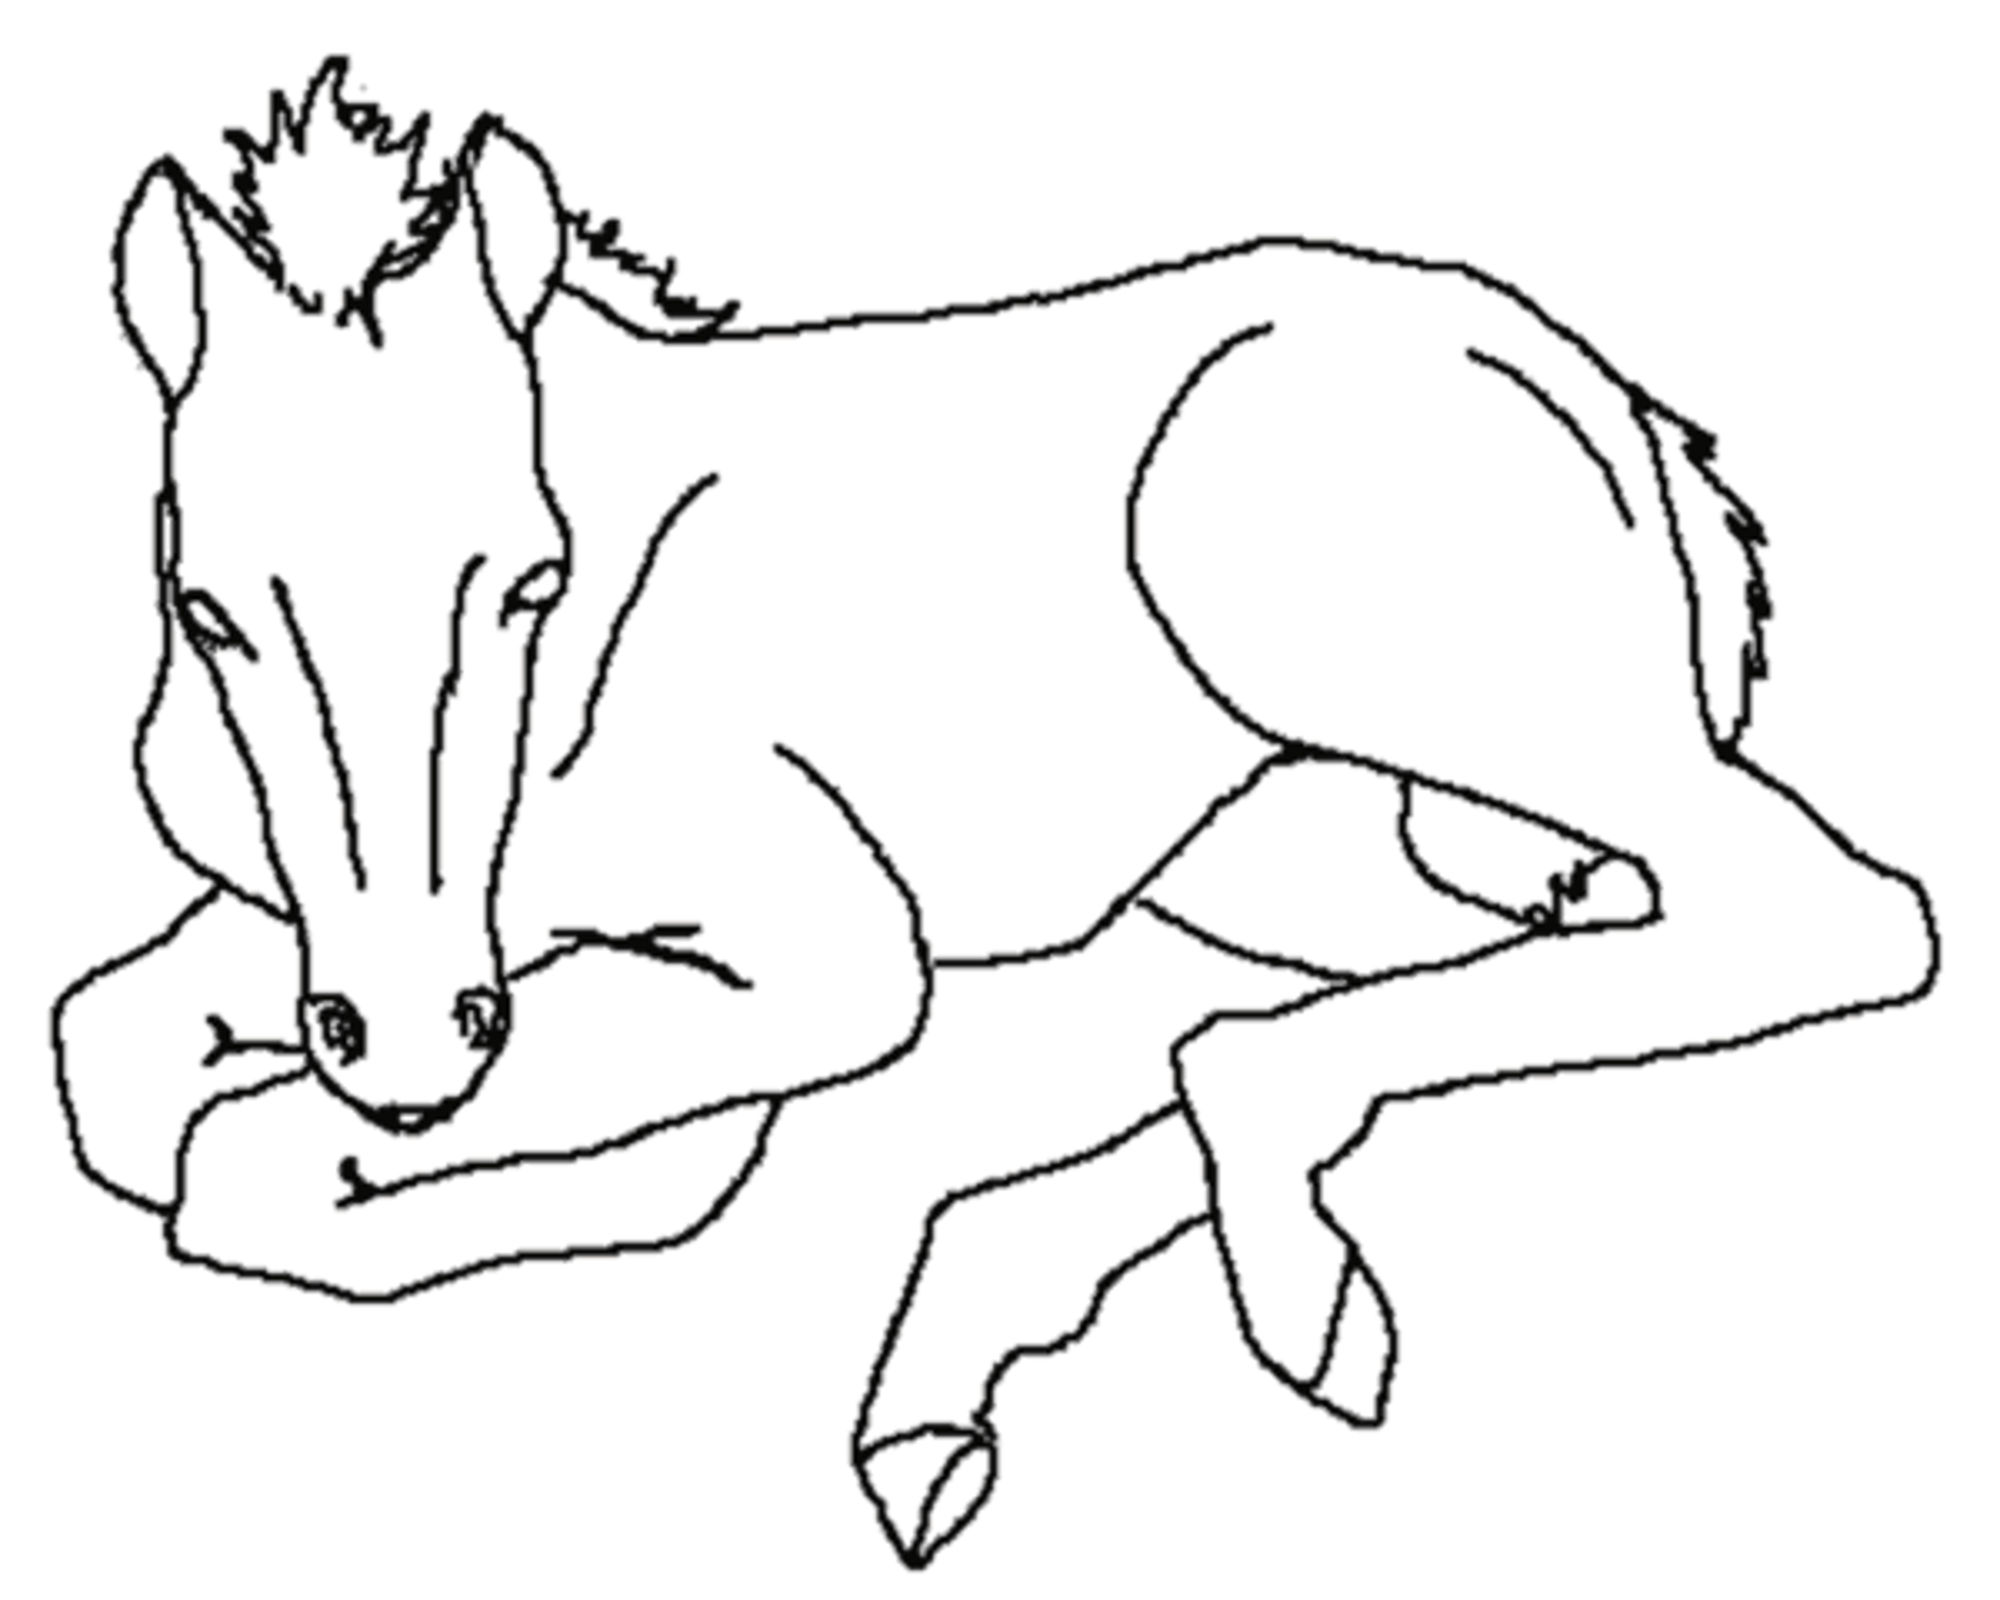 coloring pages of horse fun horse coloring pages for your kids printable of horse pages coloring